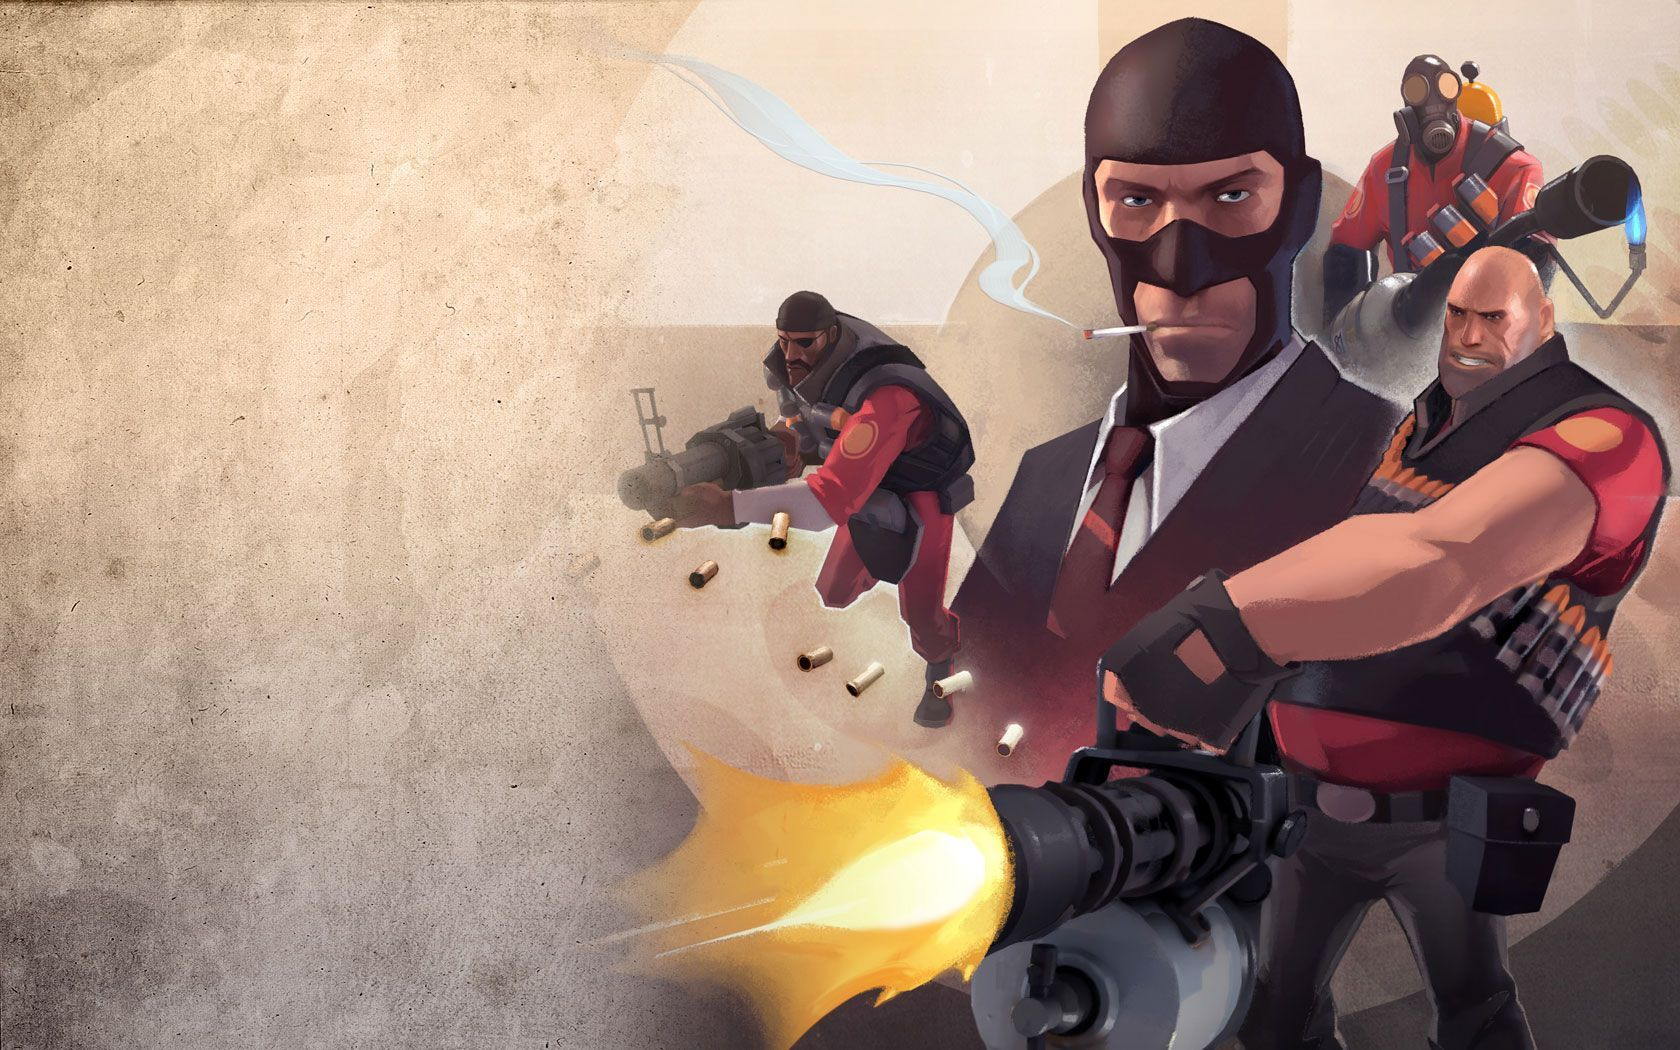 Tf2 Wallpaper Hd Posted By Ethan Mercado